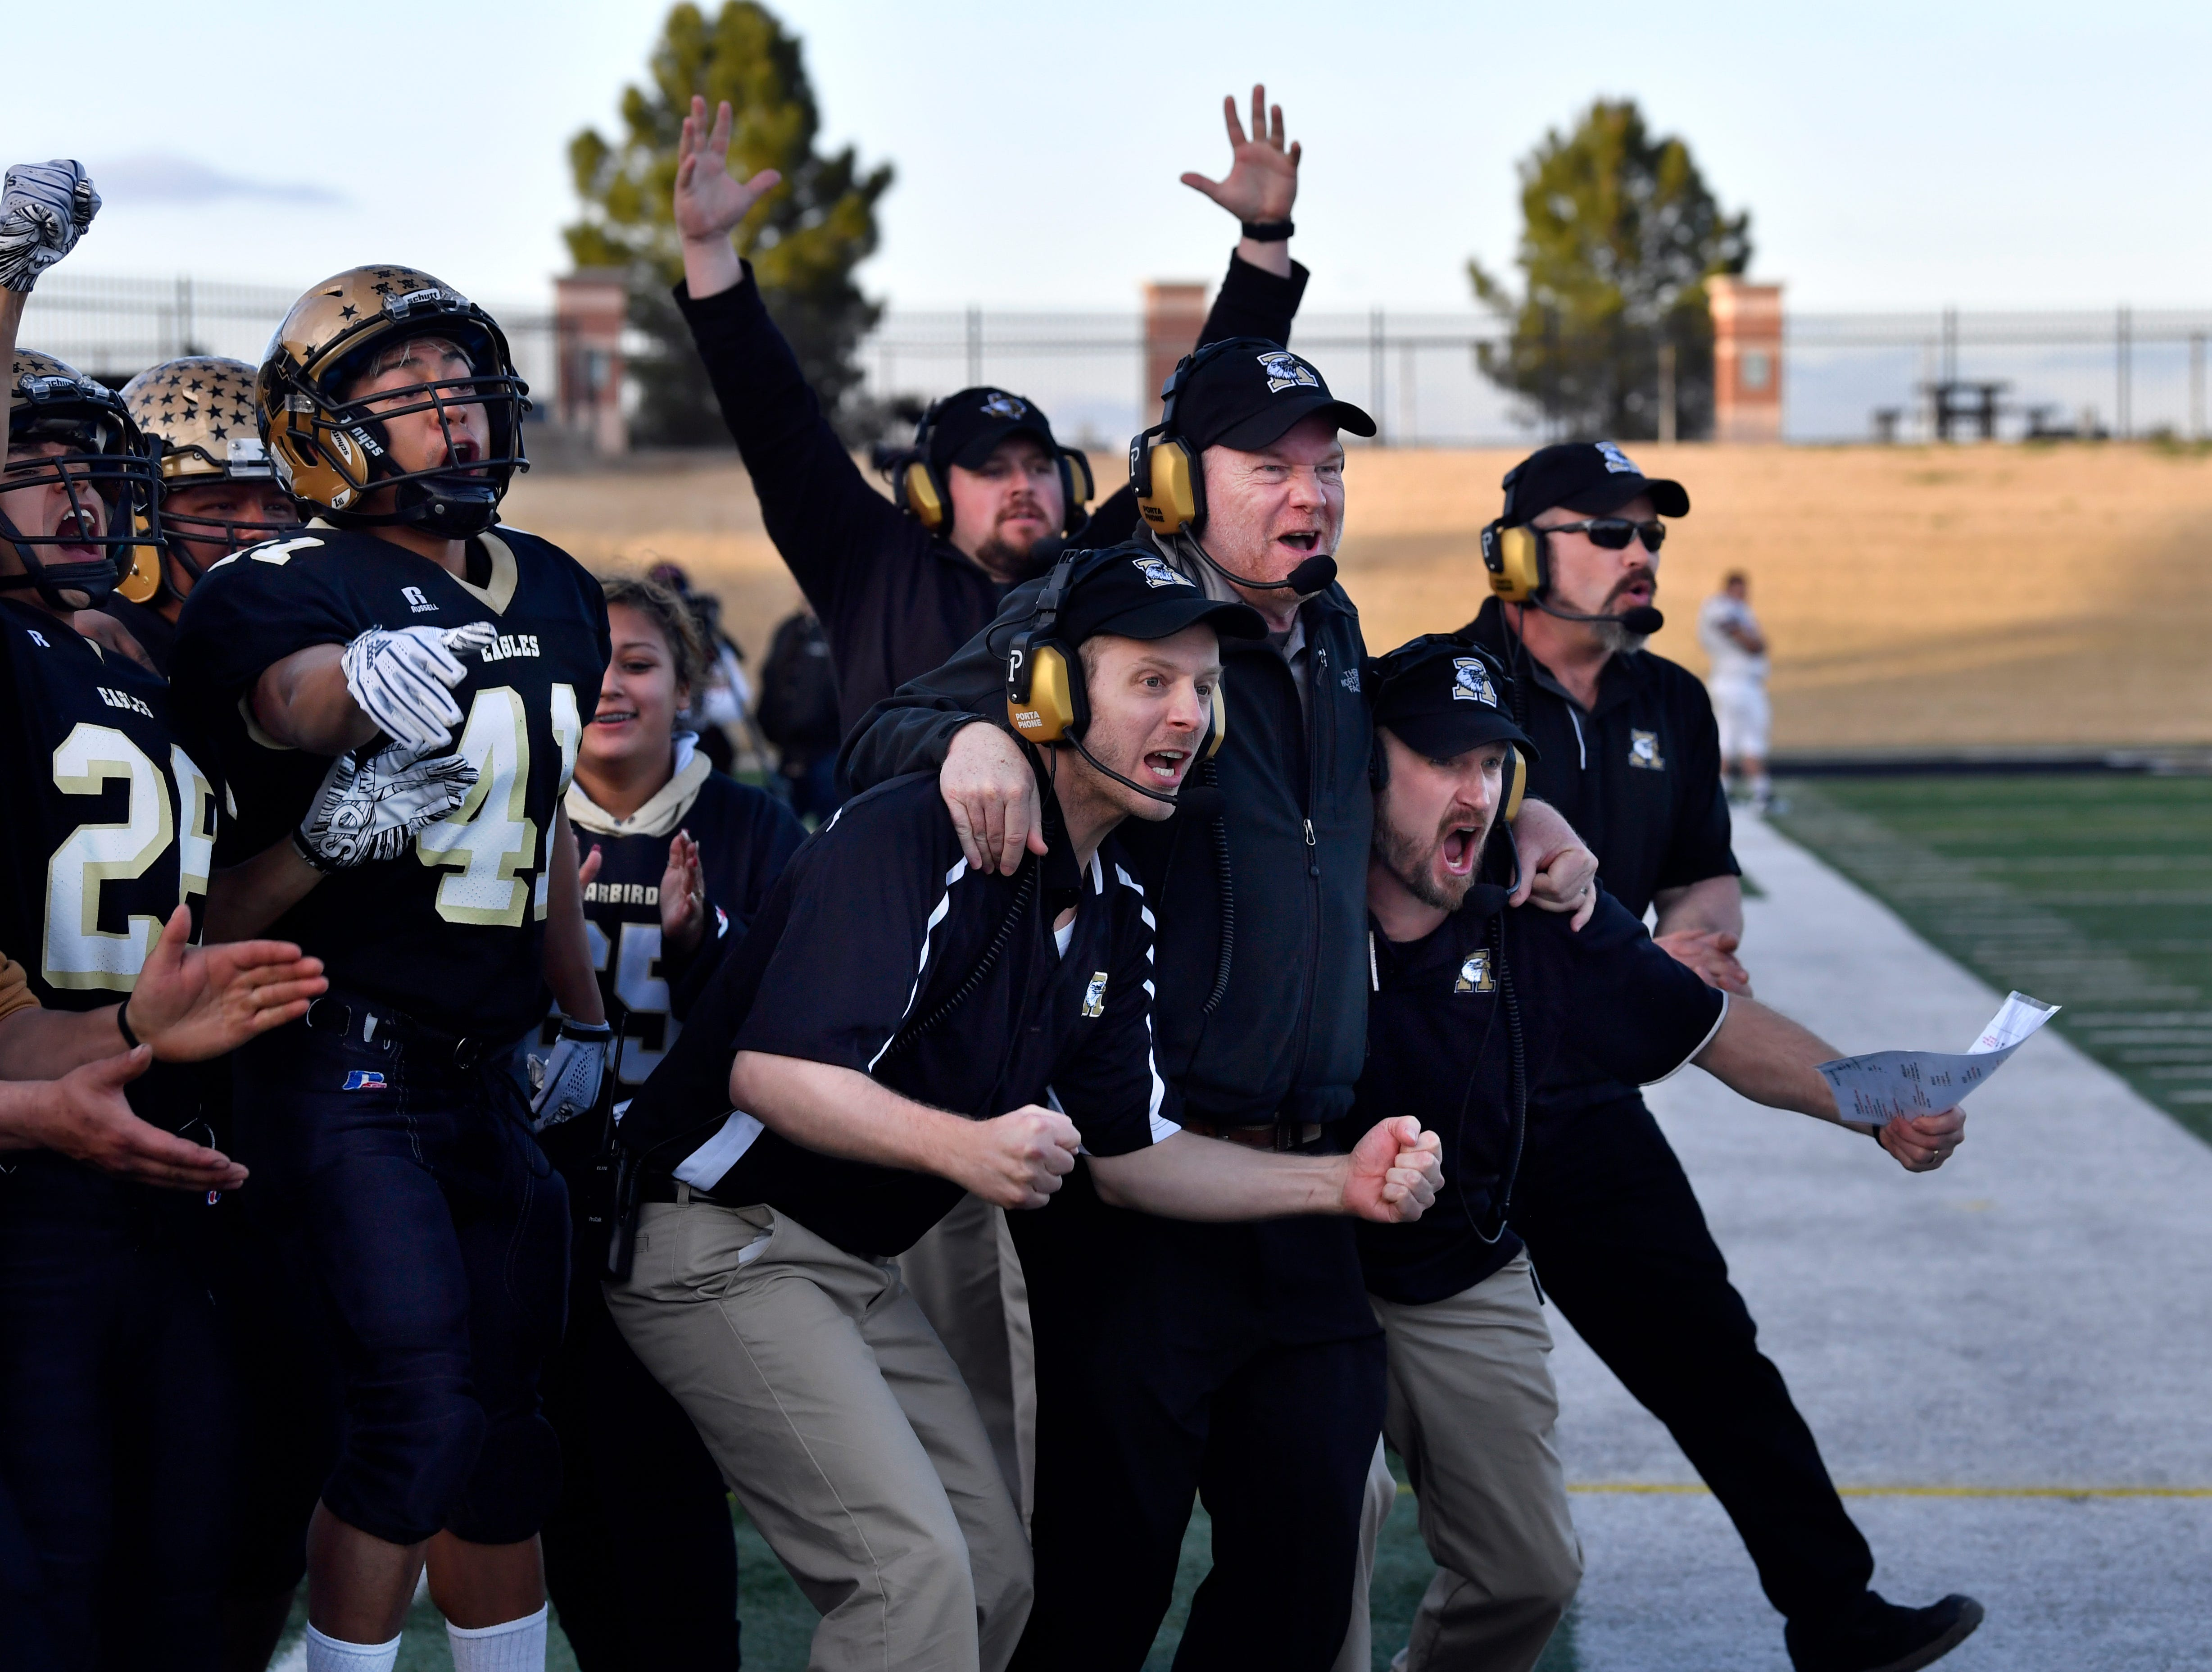 """Actors recreate the celebration of Herschel Sims' game-turning 95-yard touchdown during """"Brother's Keeper"""" filming Saturday Feb. 2, 2019. The film recreates the Abilene High School Eagles 2009 championship football season."""